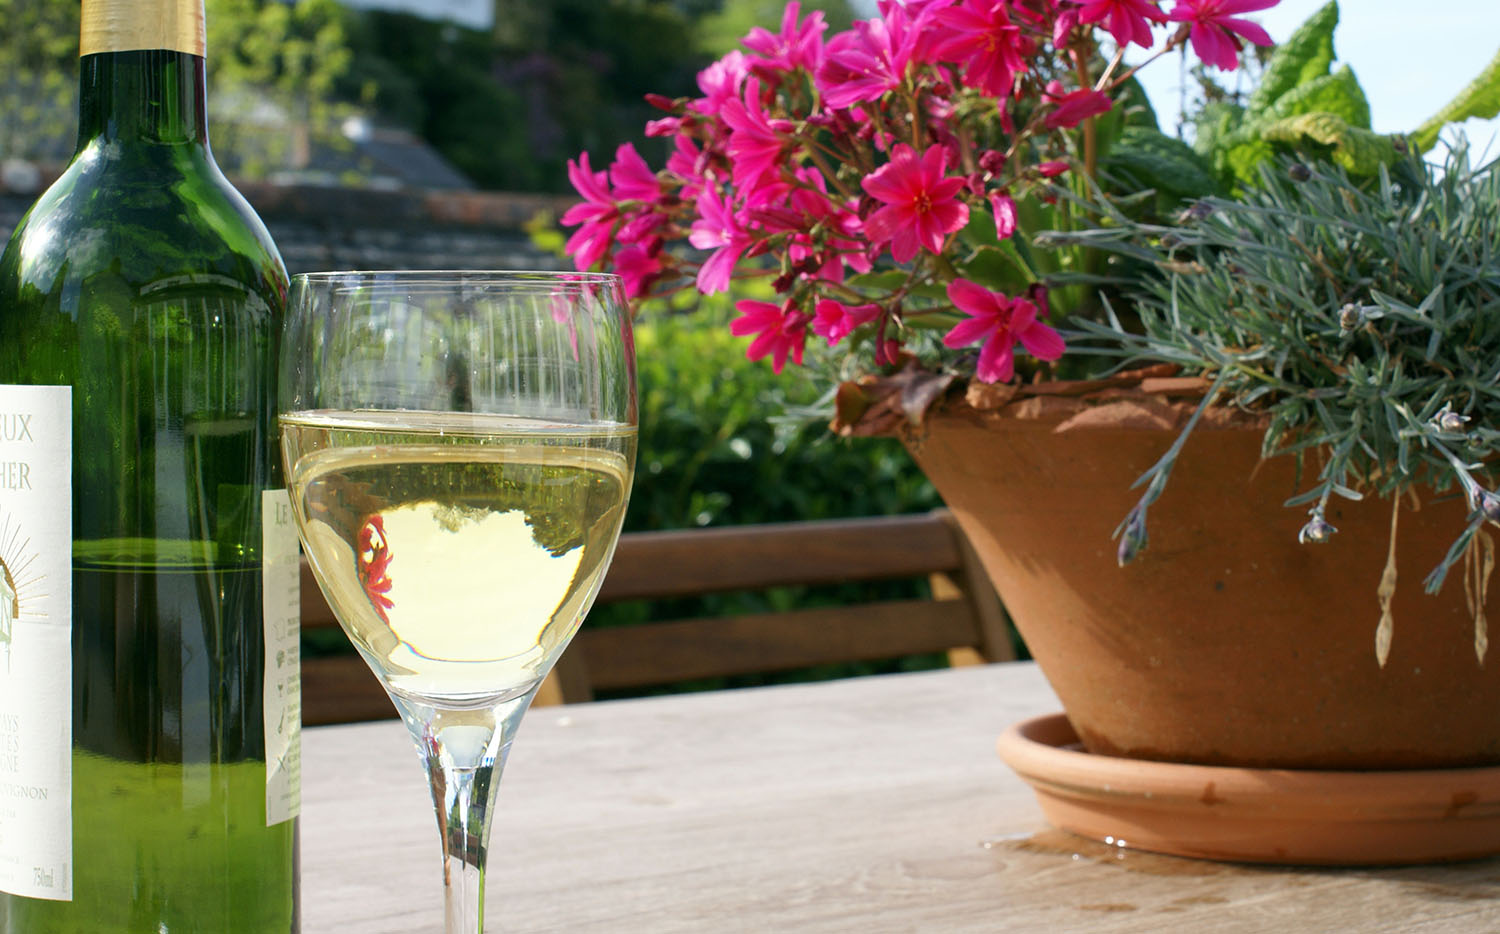 savor a glass of wine on the terrace